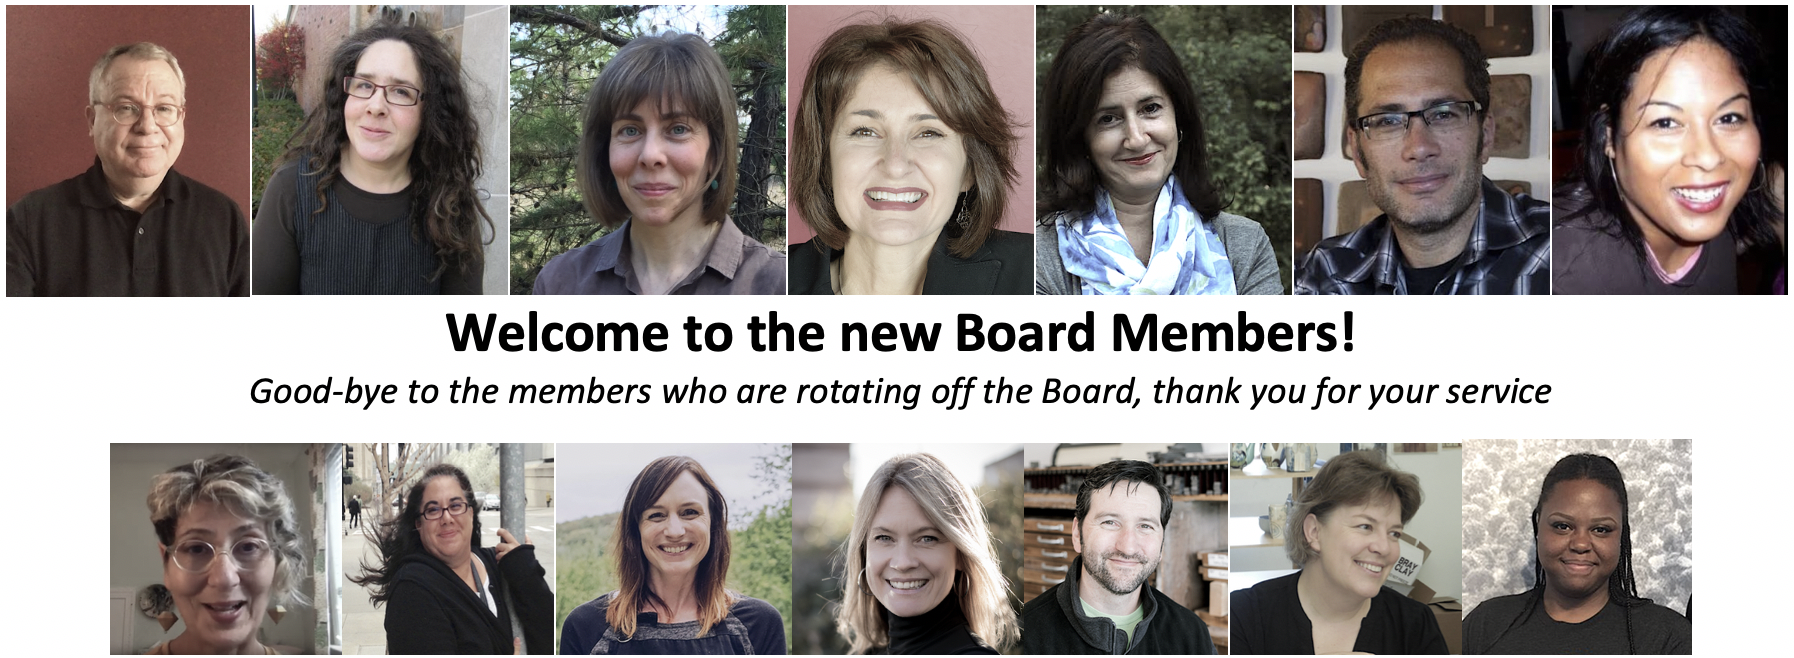 Welcome New Board Members, thank you to those who are departing